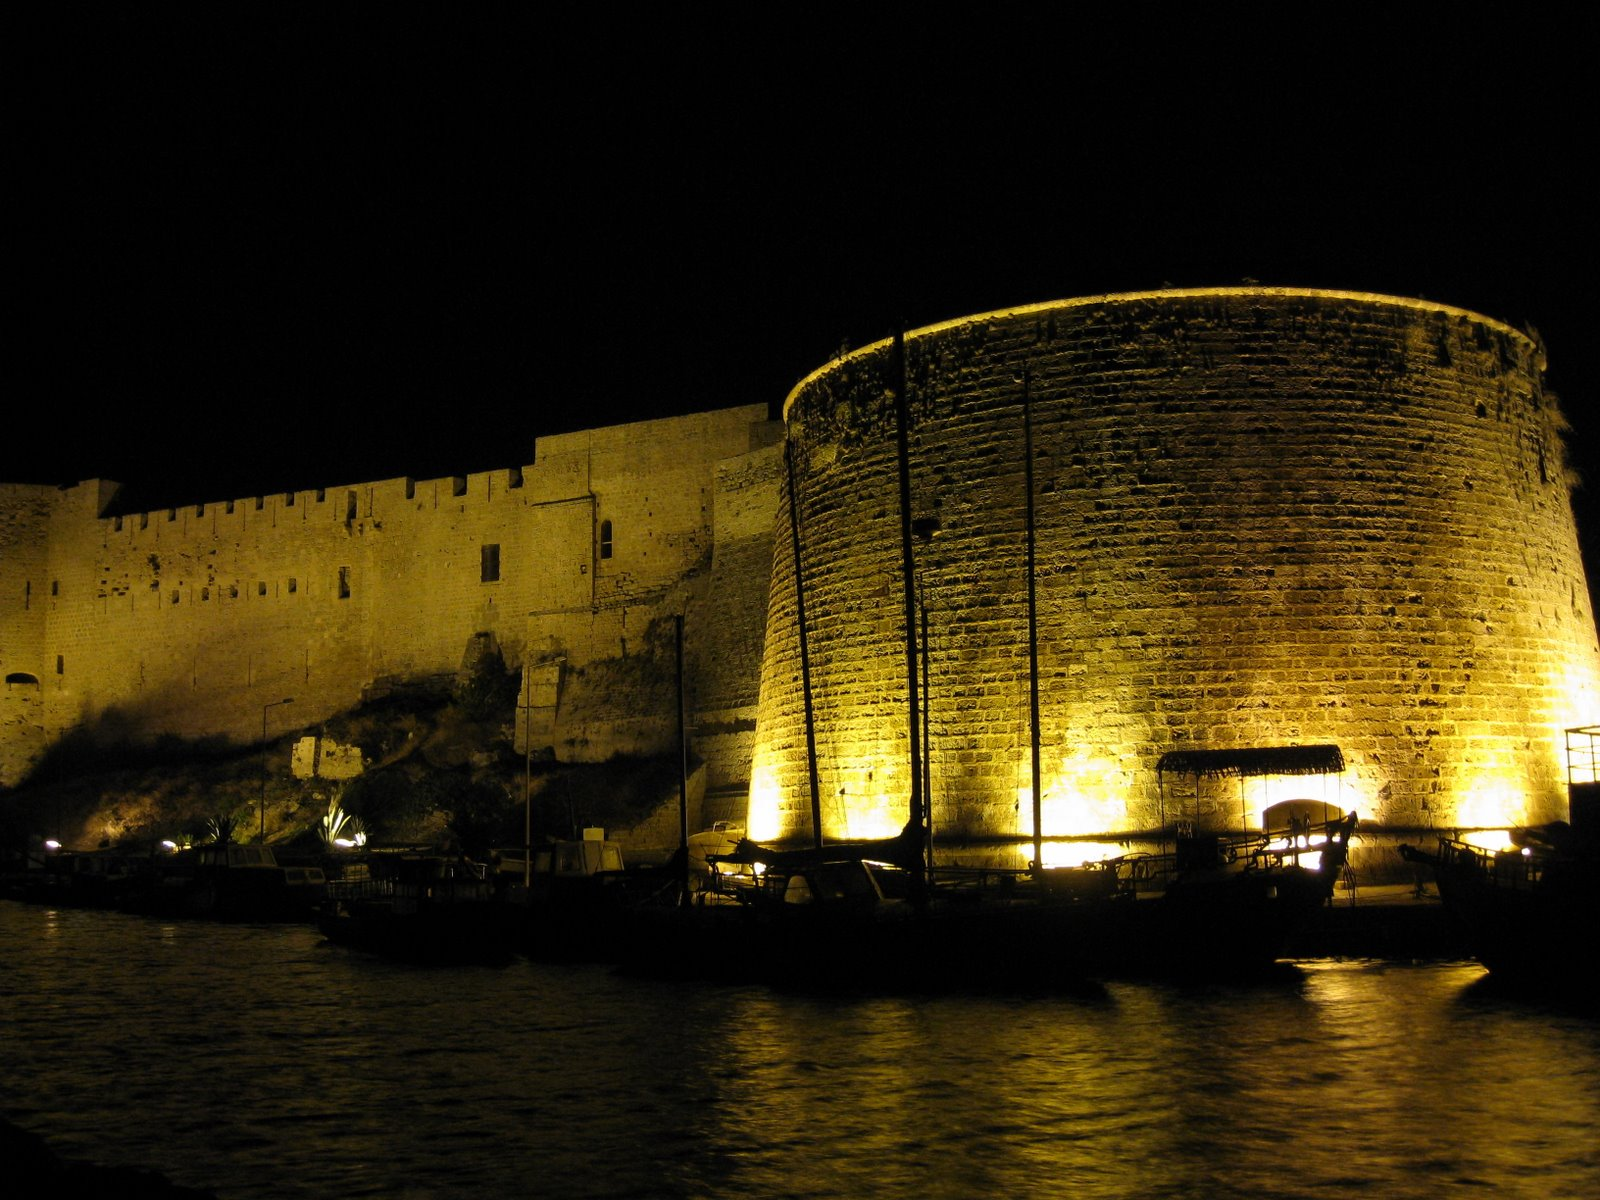 Cyprus, Europe, The castle and harbor of Kyrenia